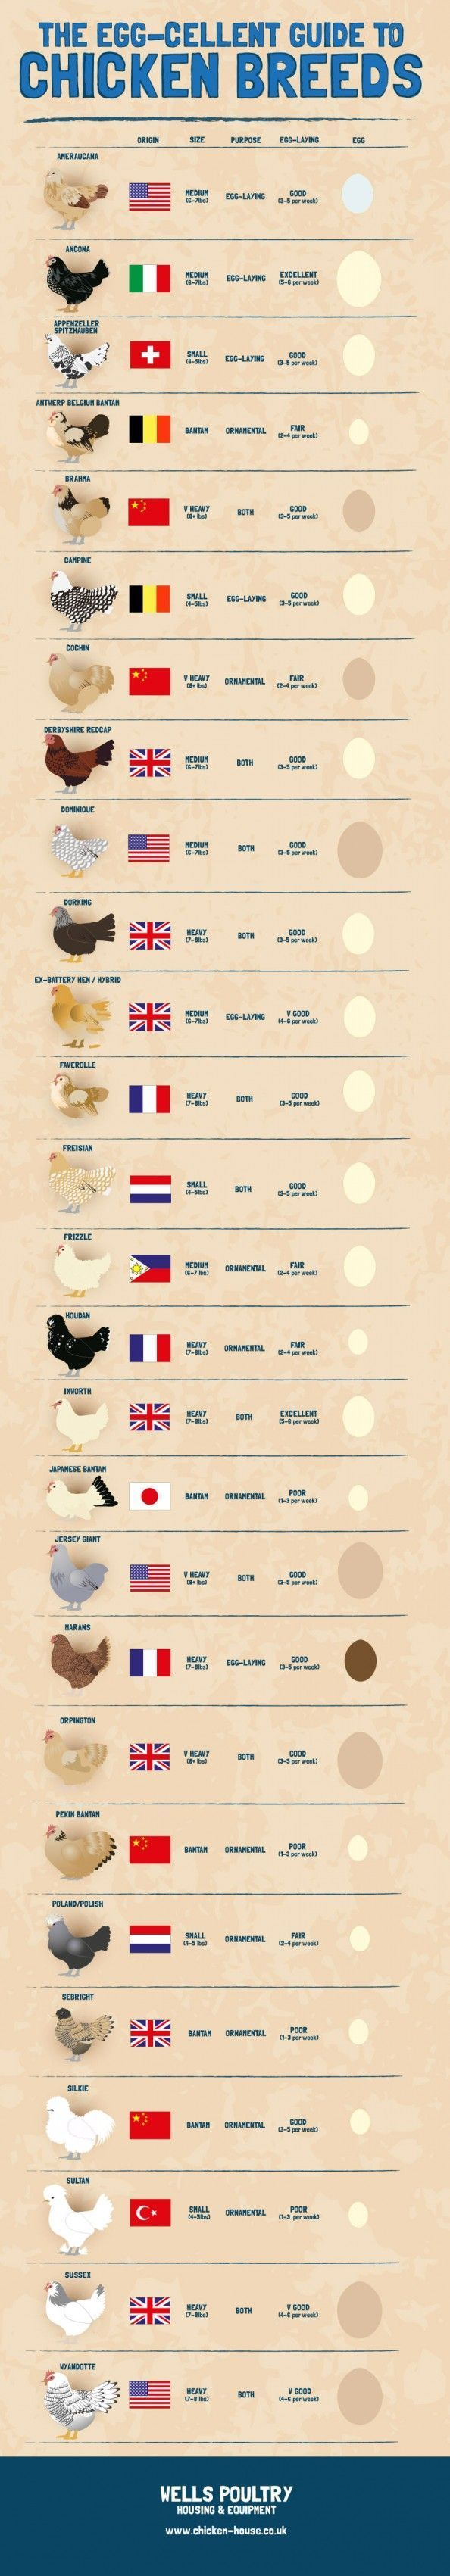 The Egg-Cellent Guide to Chicken Breeds Infographic - ruggedthug